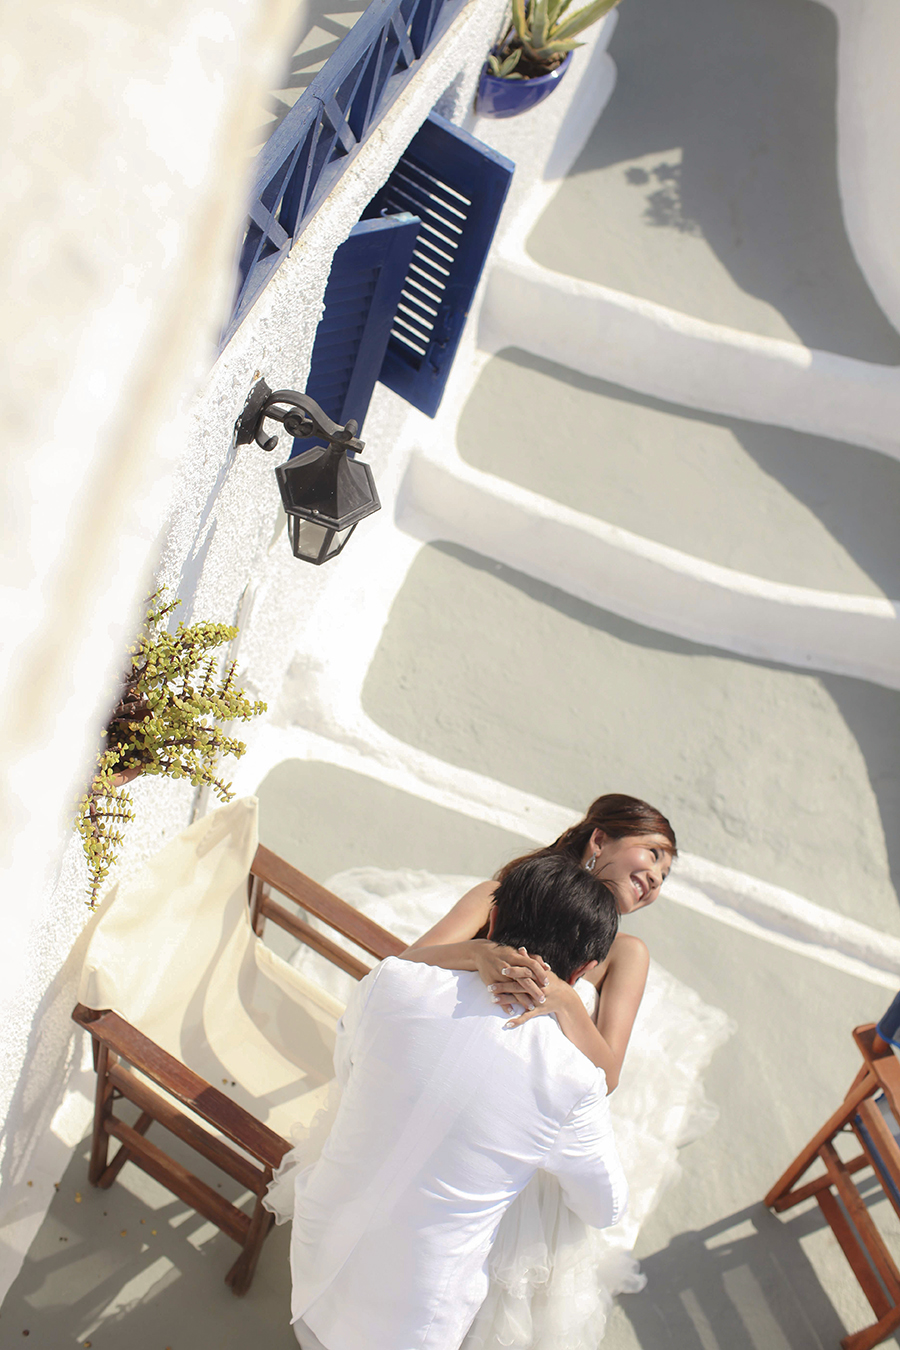 santorini greece . wedding photography by kurt ahs . 3094.jpg